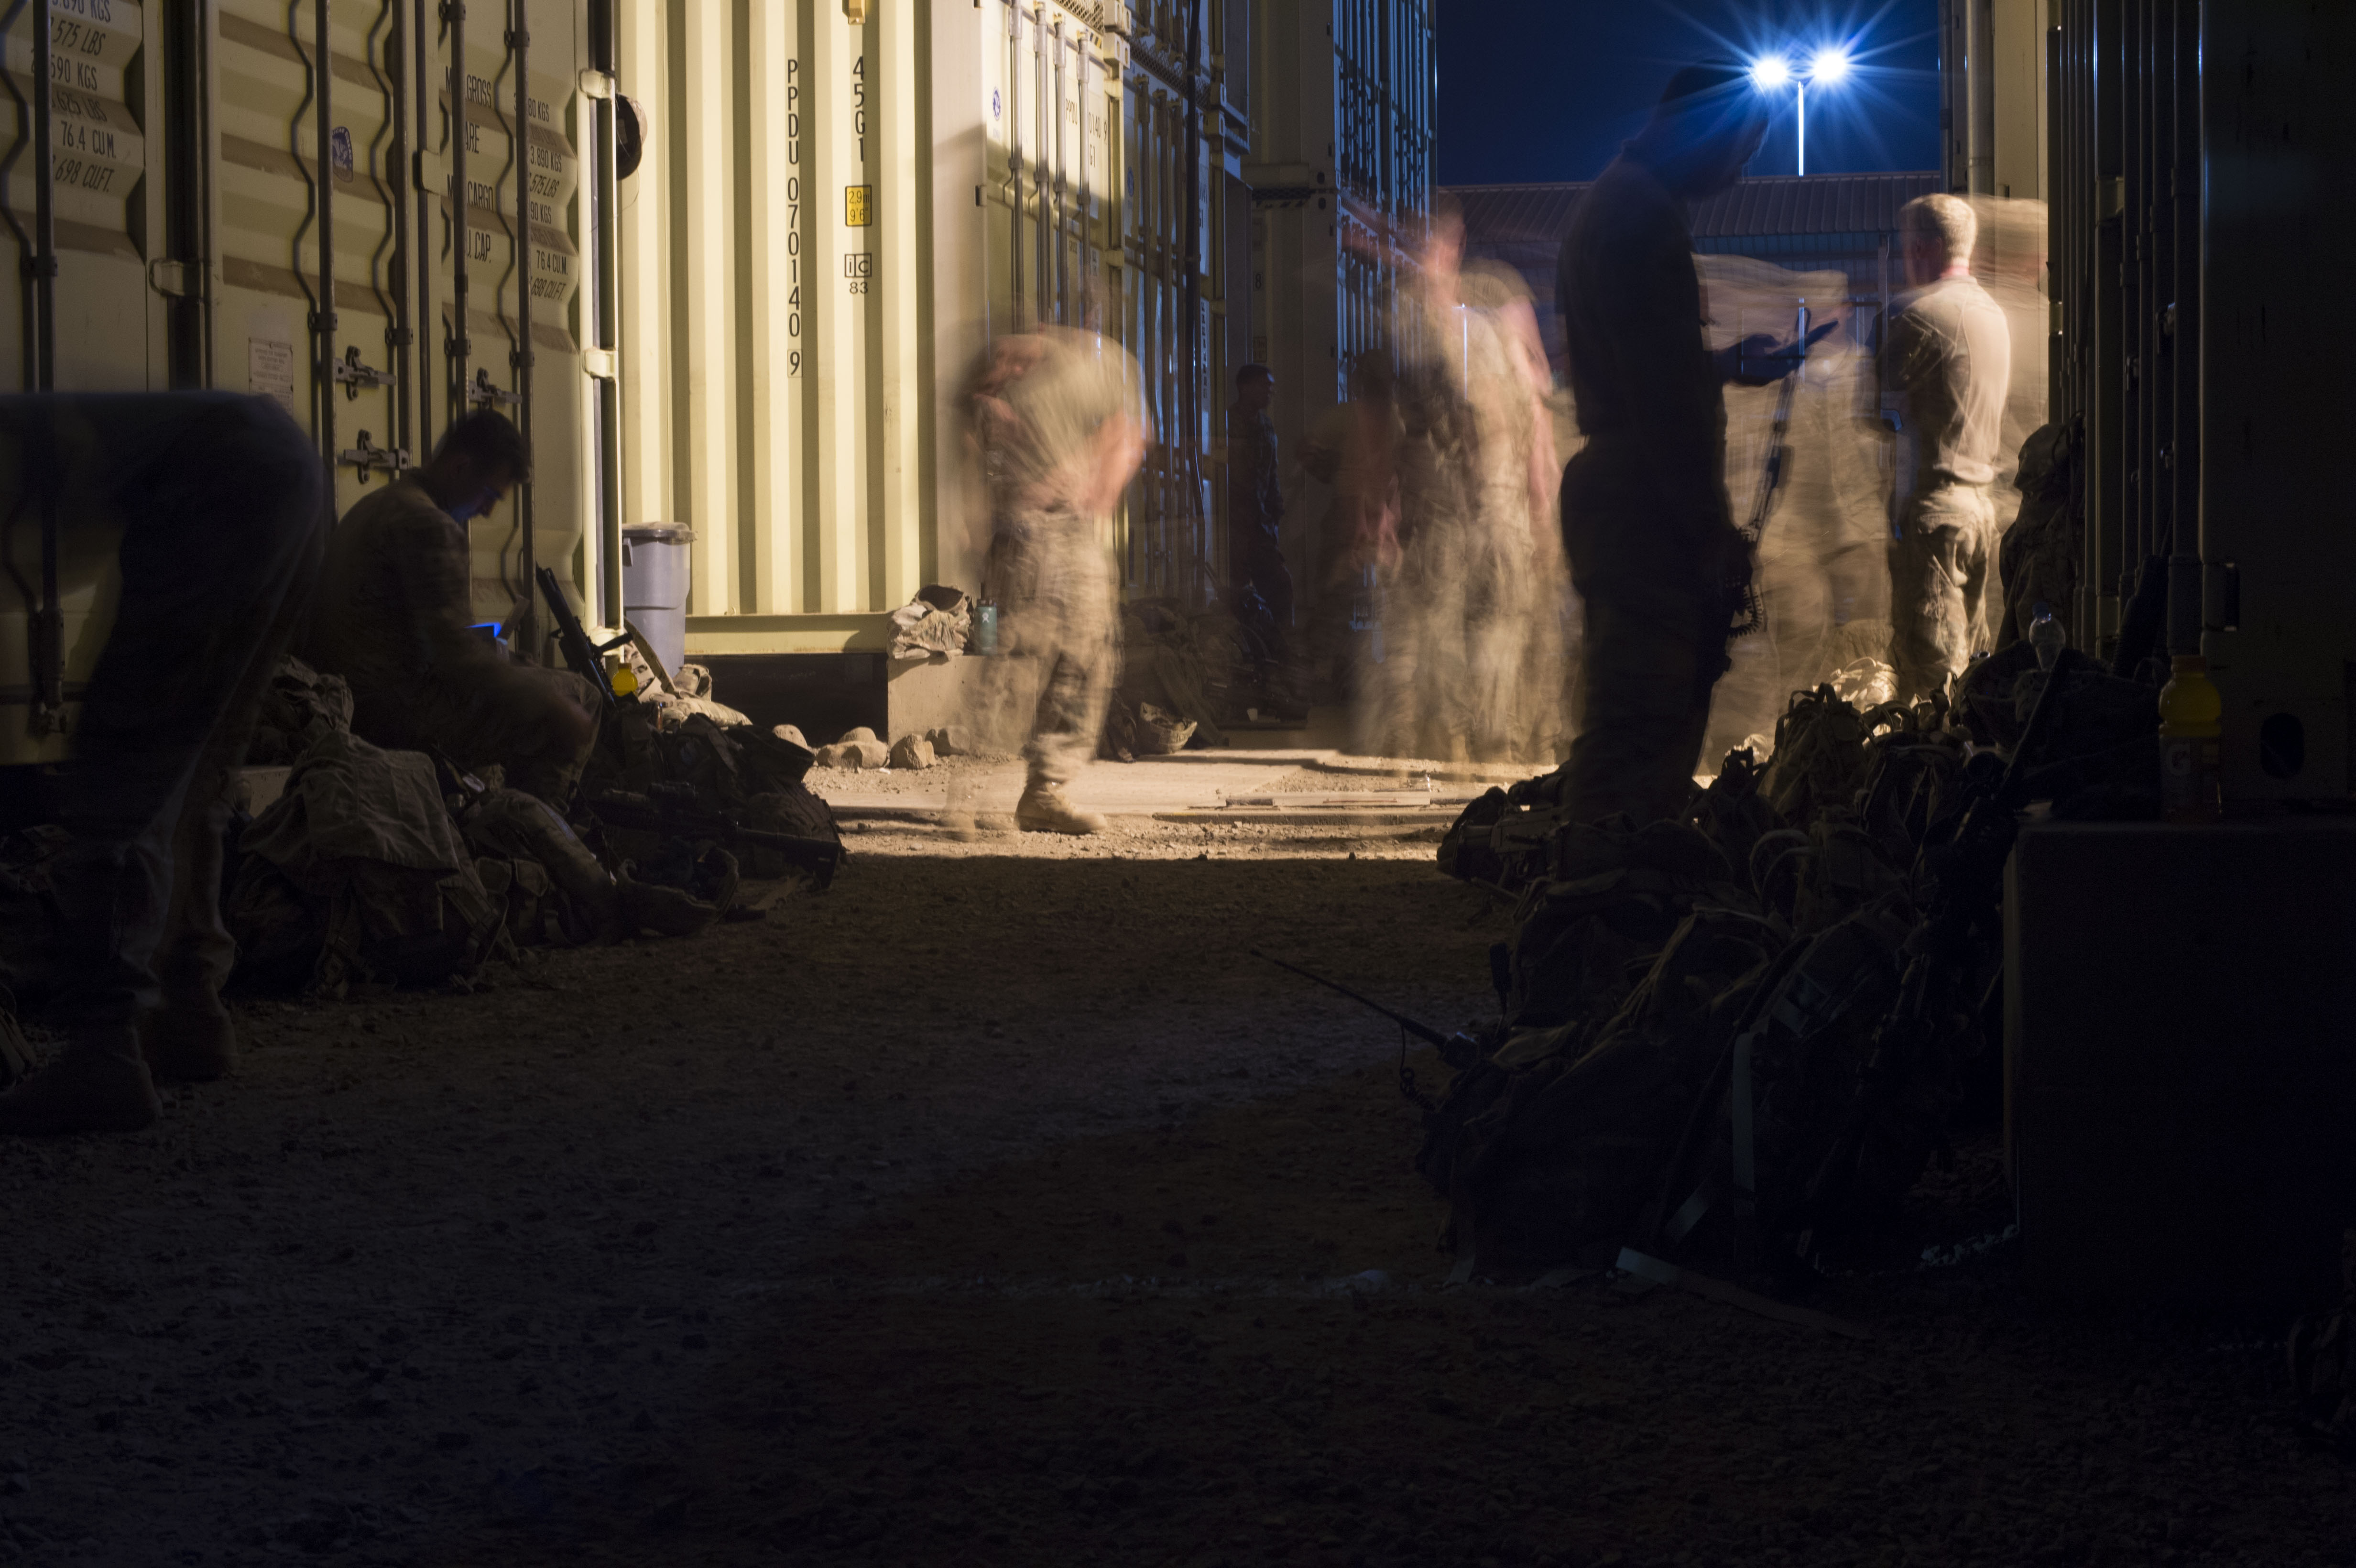 Members of the Combined Joint Task Force Horn of Africa's East African Response Force check and pack gear before loading onto an aircraft during an EARF exercise May 27, 2016, at Camp Lemonnier, Djibouti.  CJTF-HOA planned and executed the validation after  1st Battalion, 124th Infantry Regiment, or Task Force Hurricane, from Miami, Fla., assumed responsibility of the EARF mission from  2nd Battalion, 124th Infantry Regiment, or Task Force Seminole, who will return to Orlando, Fla. (U.S. Air Force photo by Staff Sgt. Eric Summers Jr.)